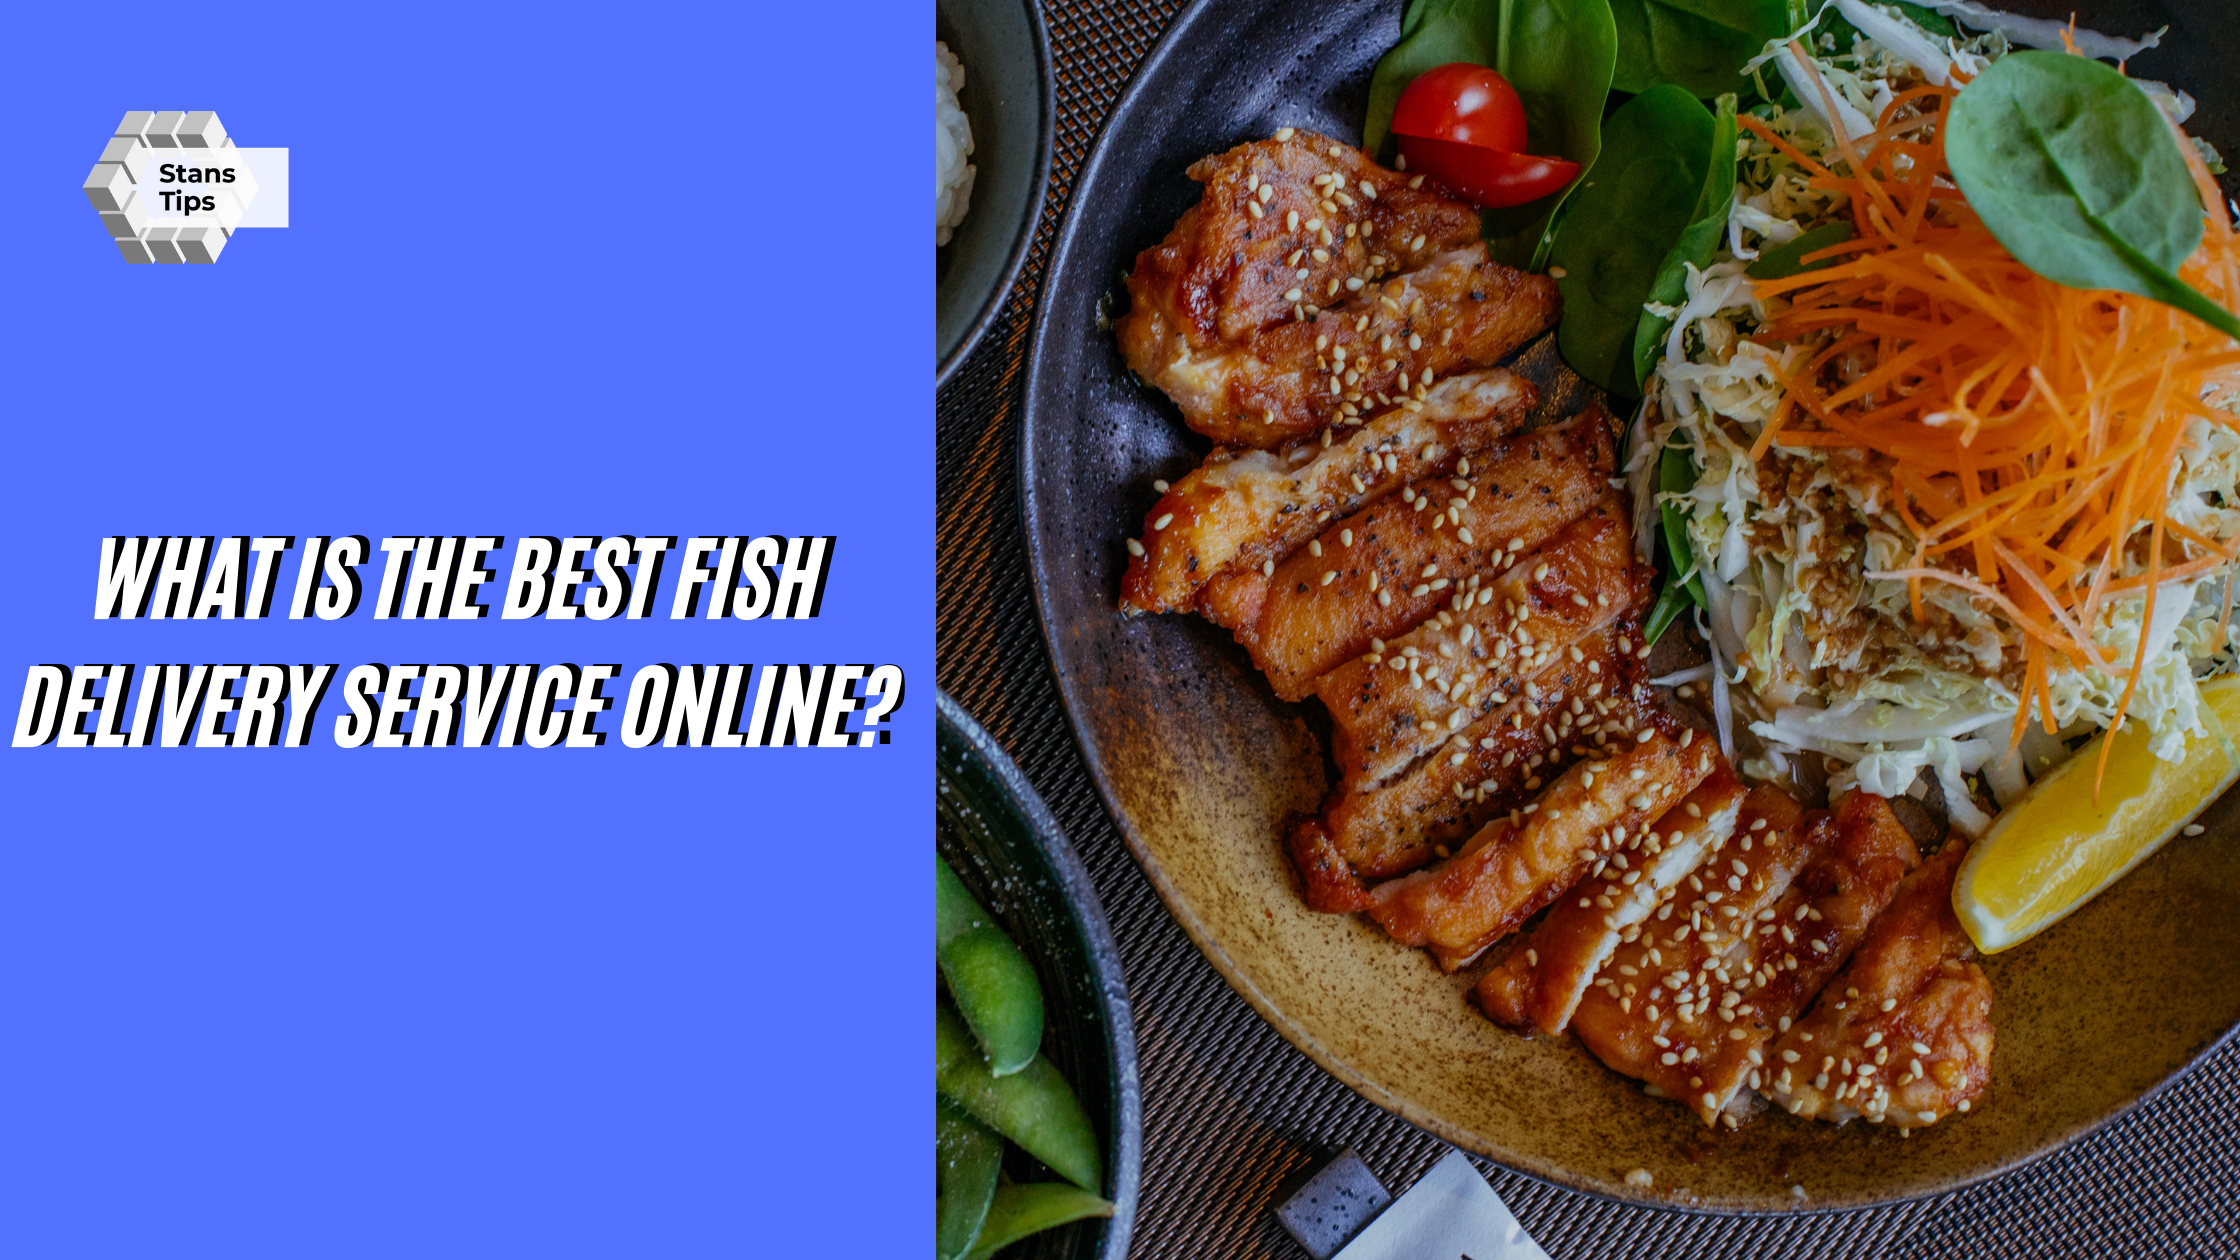 What Is the Best Fish Delivery Service Online